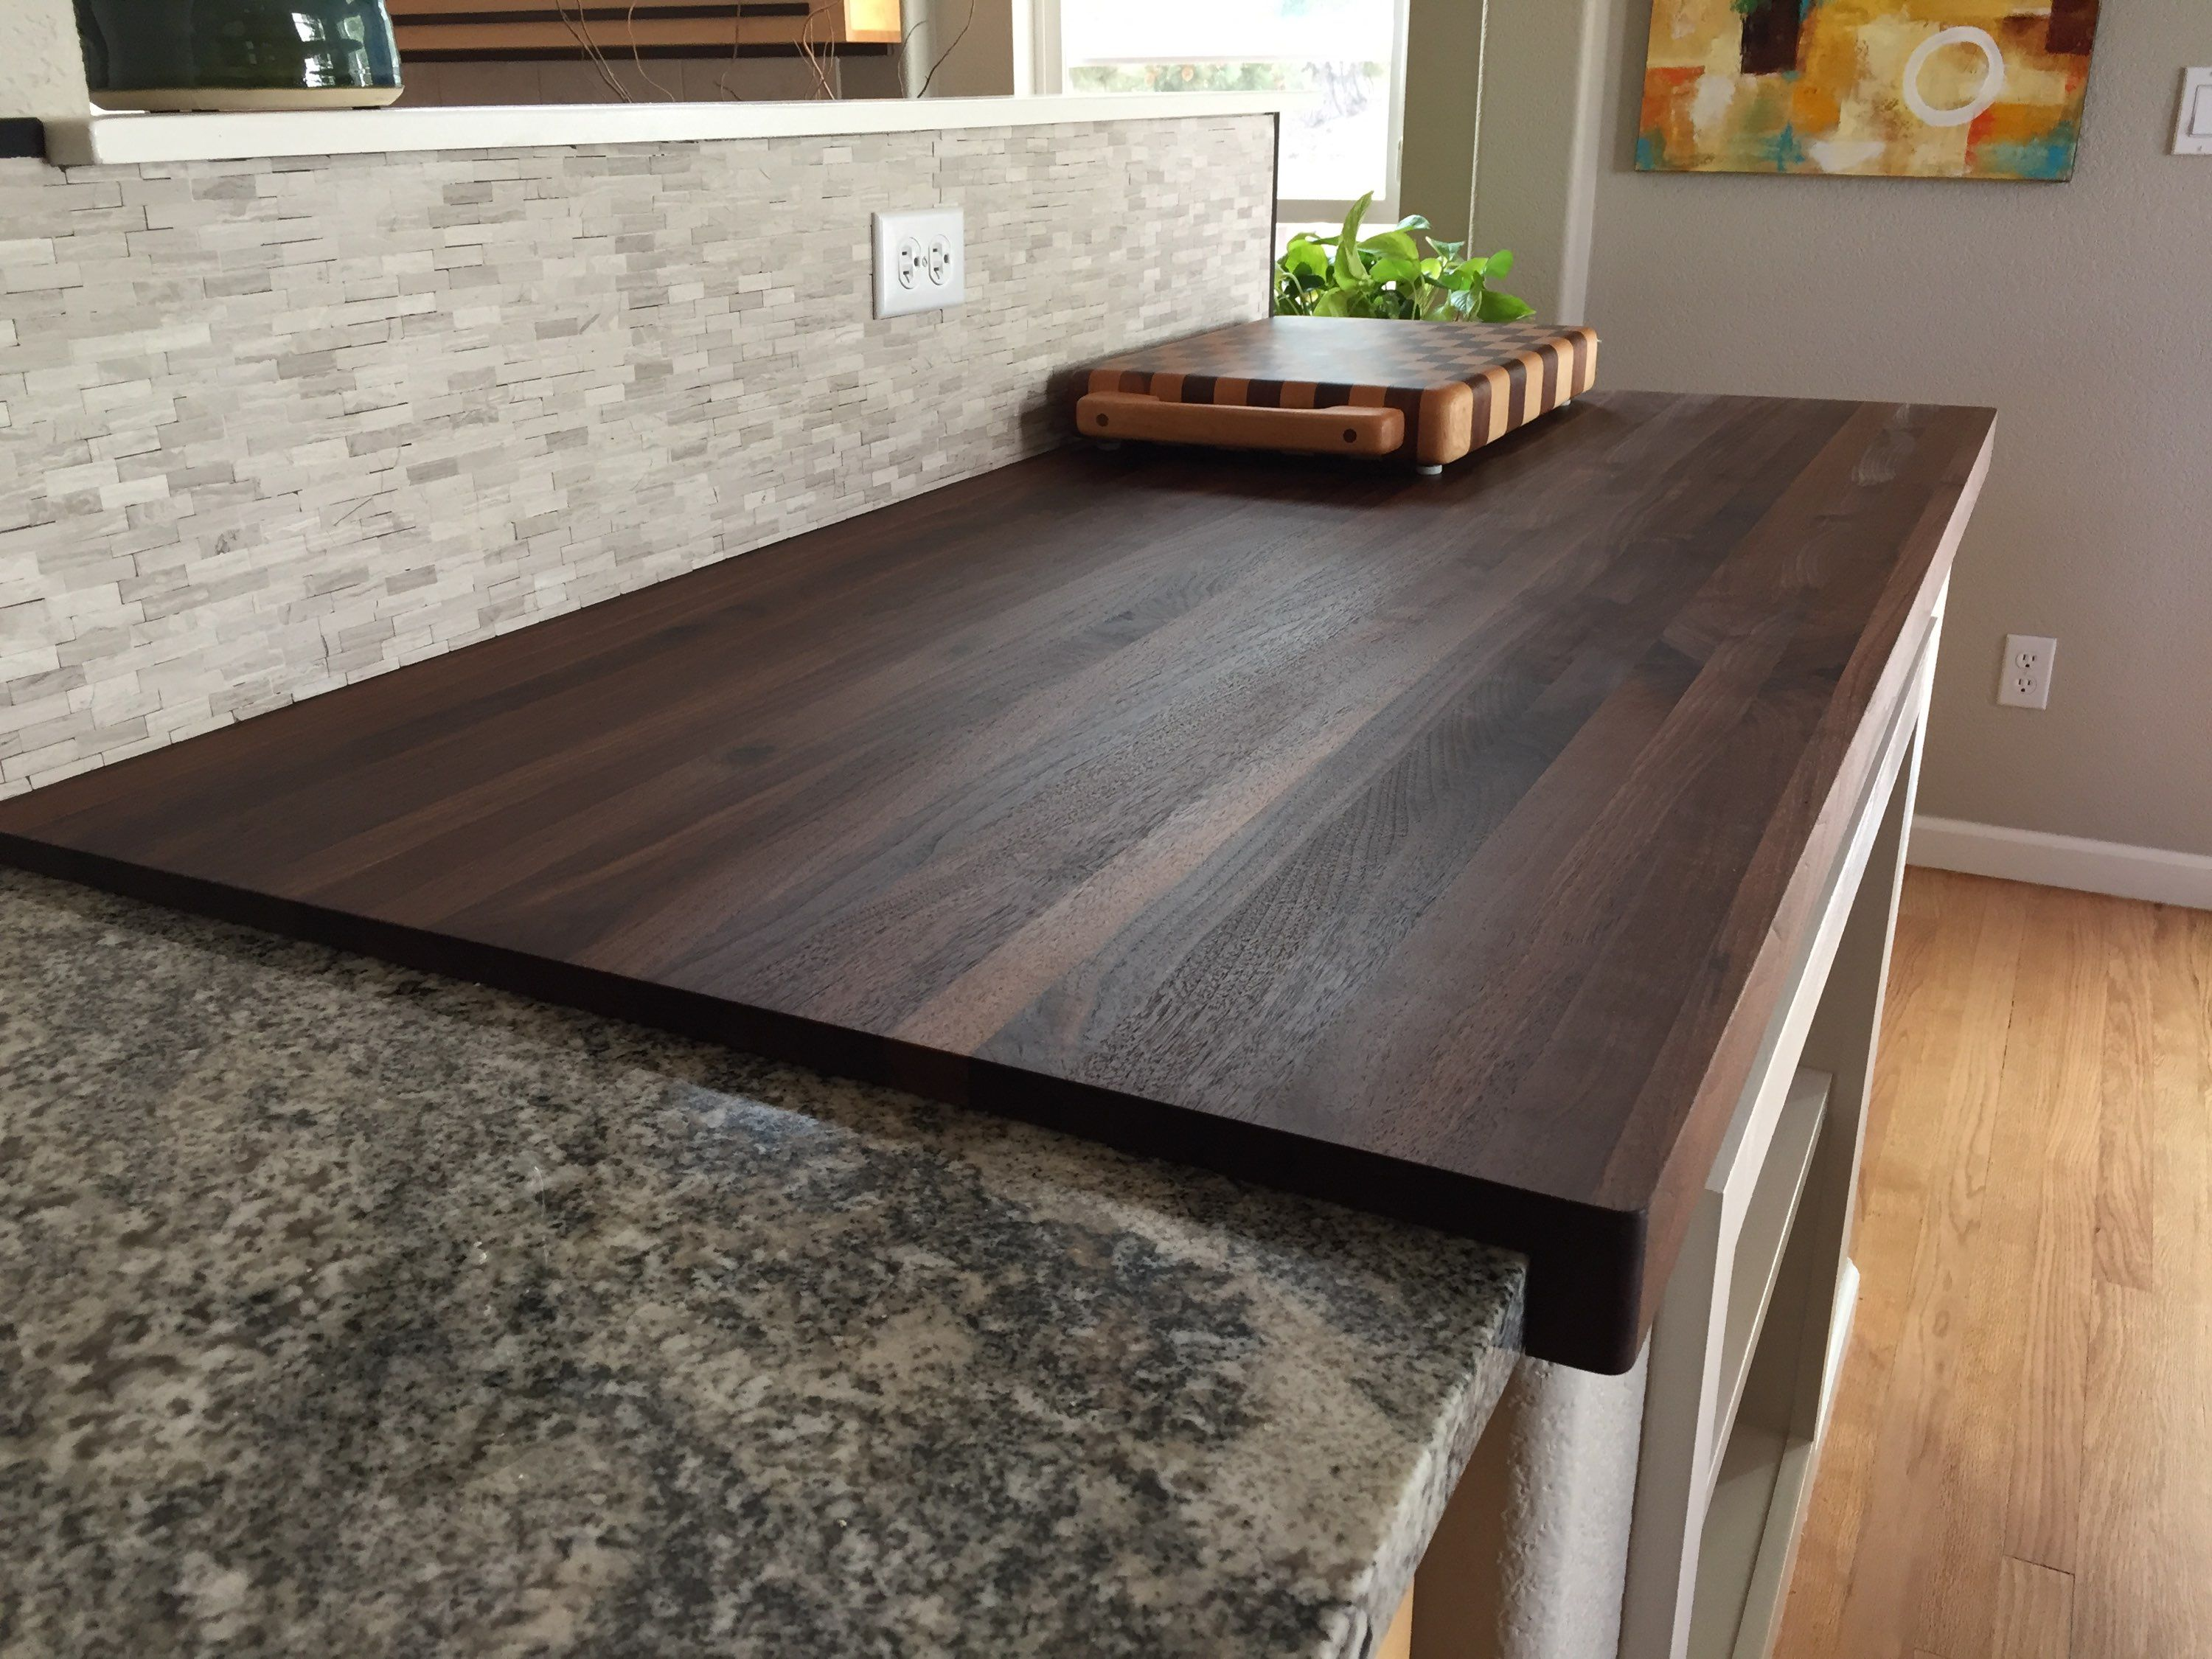 Walnut Butcher Block Countertop Customize Order Online Butcher Block Countertops Walnut Butcher Block Countertops Kitchen Remodel Countertops